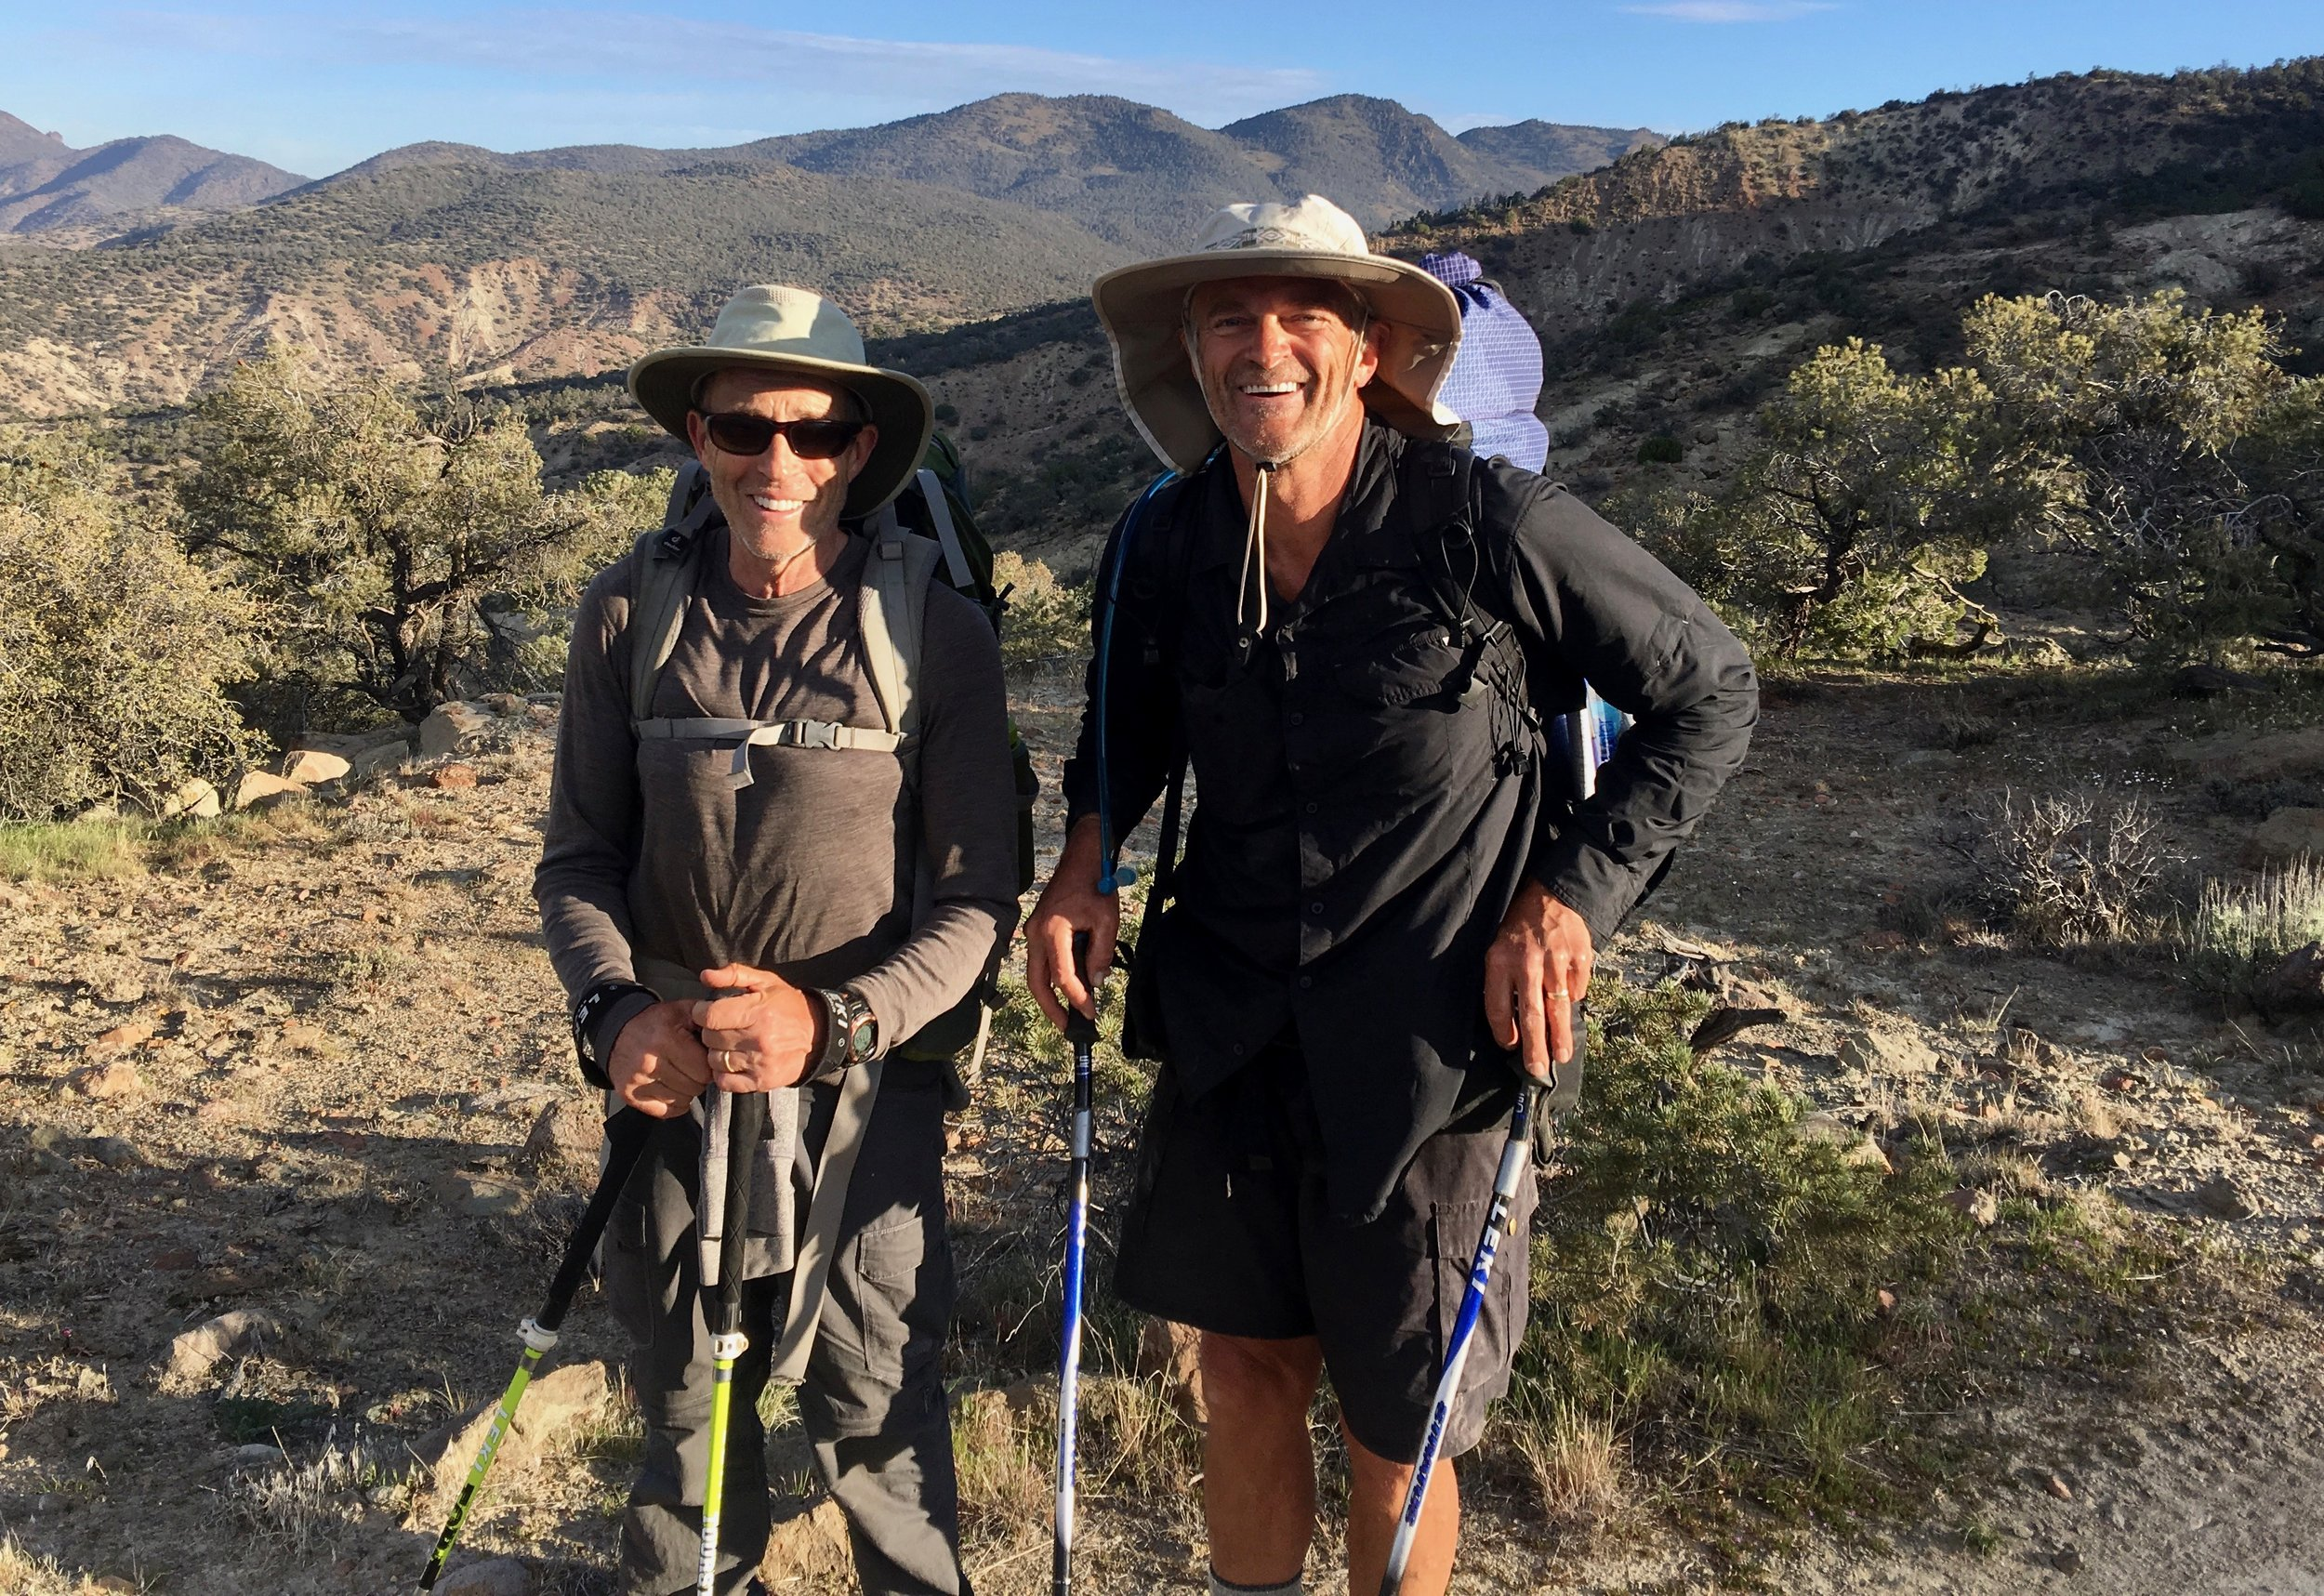 They were both 67 so we toasted to the 67 year old folks on the trail today.( That woulds be us also)